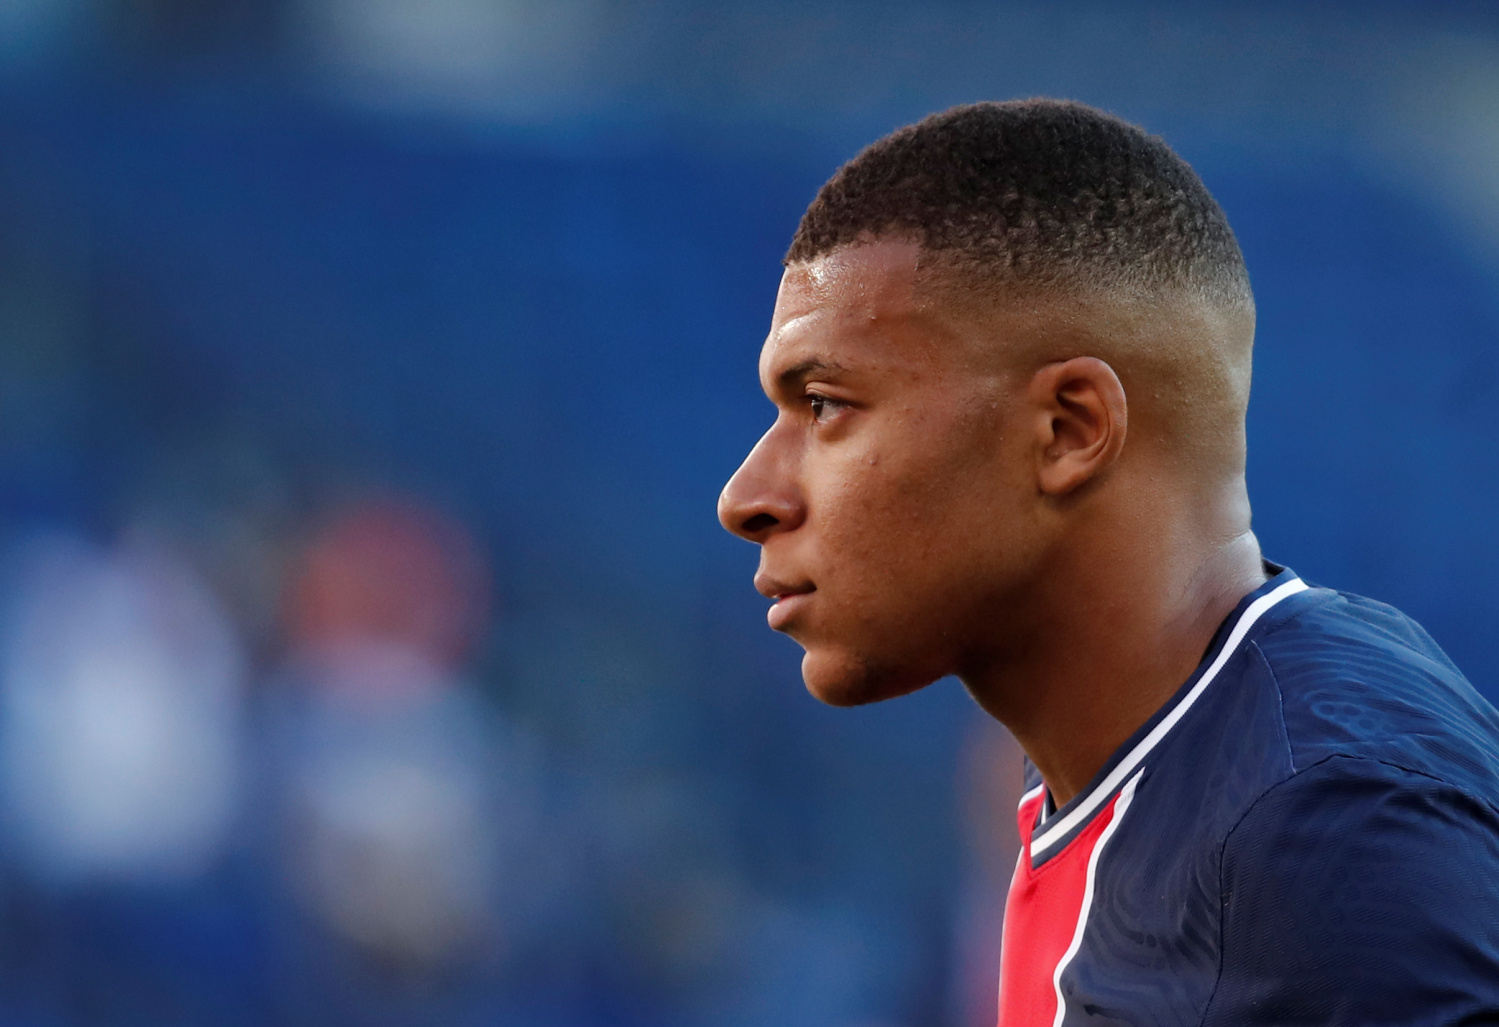 Kylian Mbappe Leaving PSG For Real Madrid Next Summer, And ...